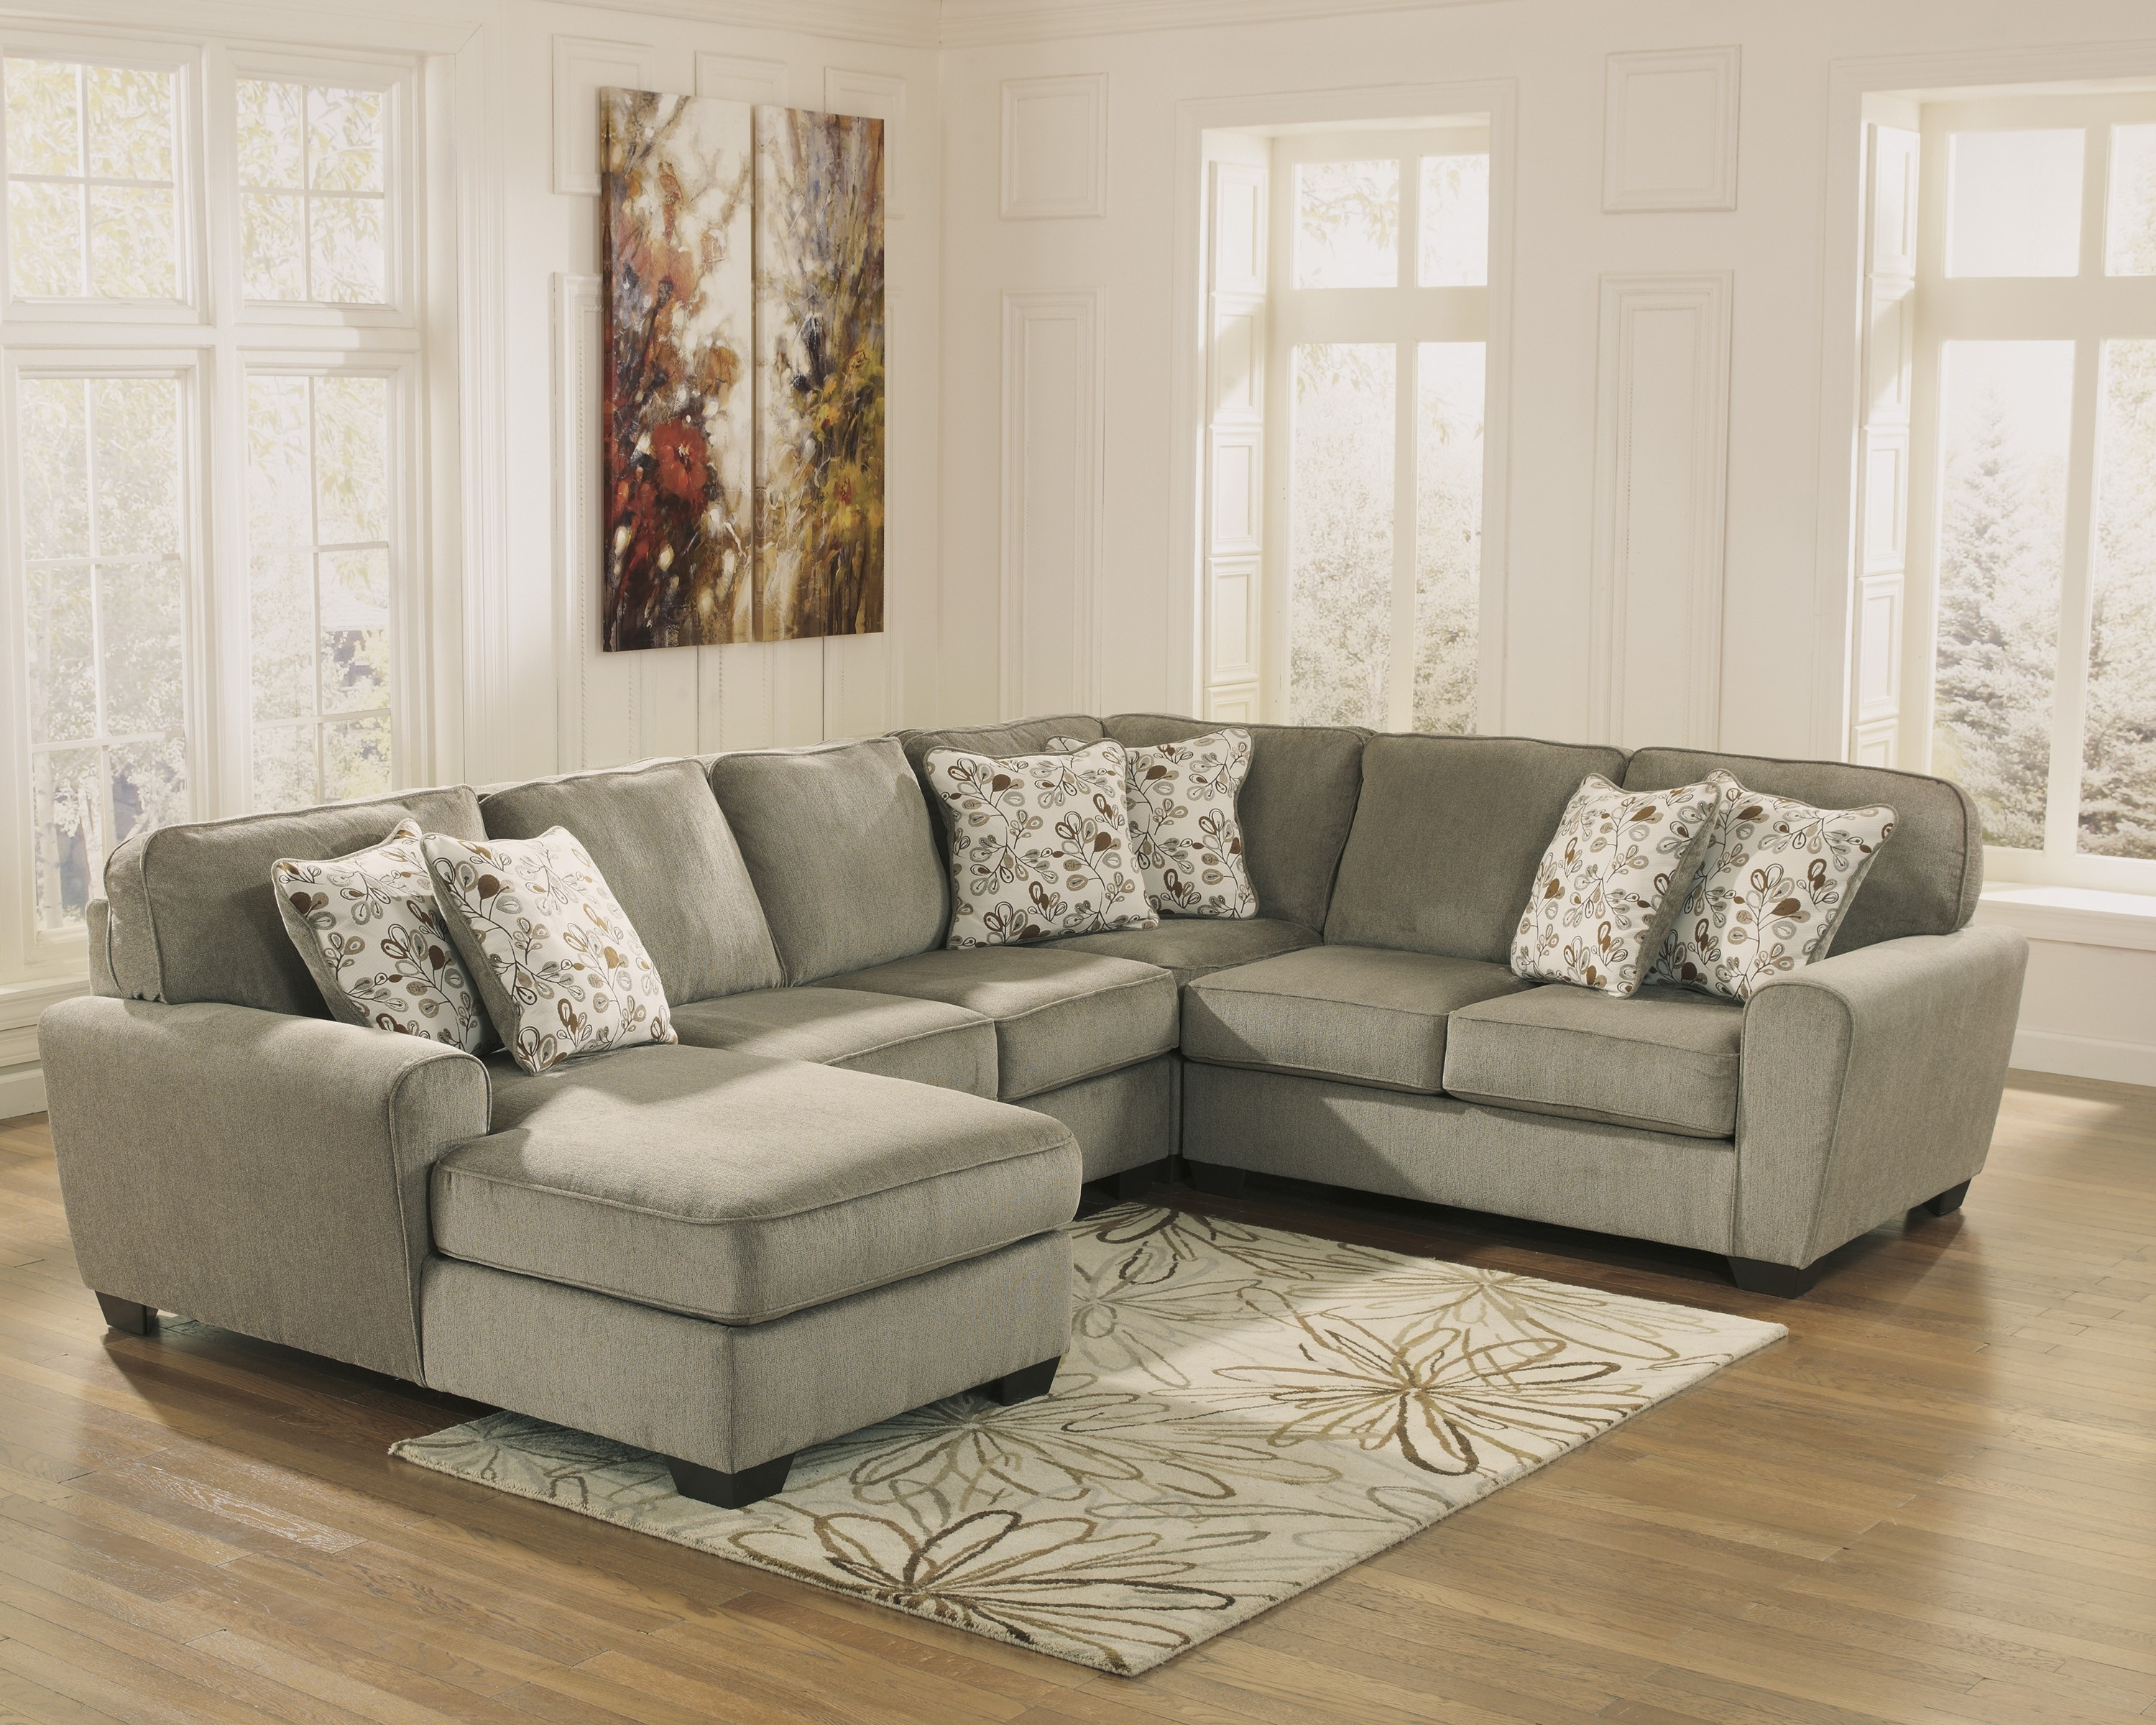 Fancy 4 Piece Sectional Sofa 21 Living Room Sofa Ideas With 4 Piece intended for Alder 4 Piece Sectionals (Image 13 of 30)